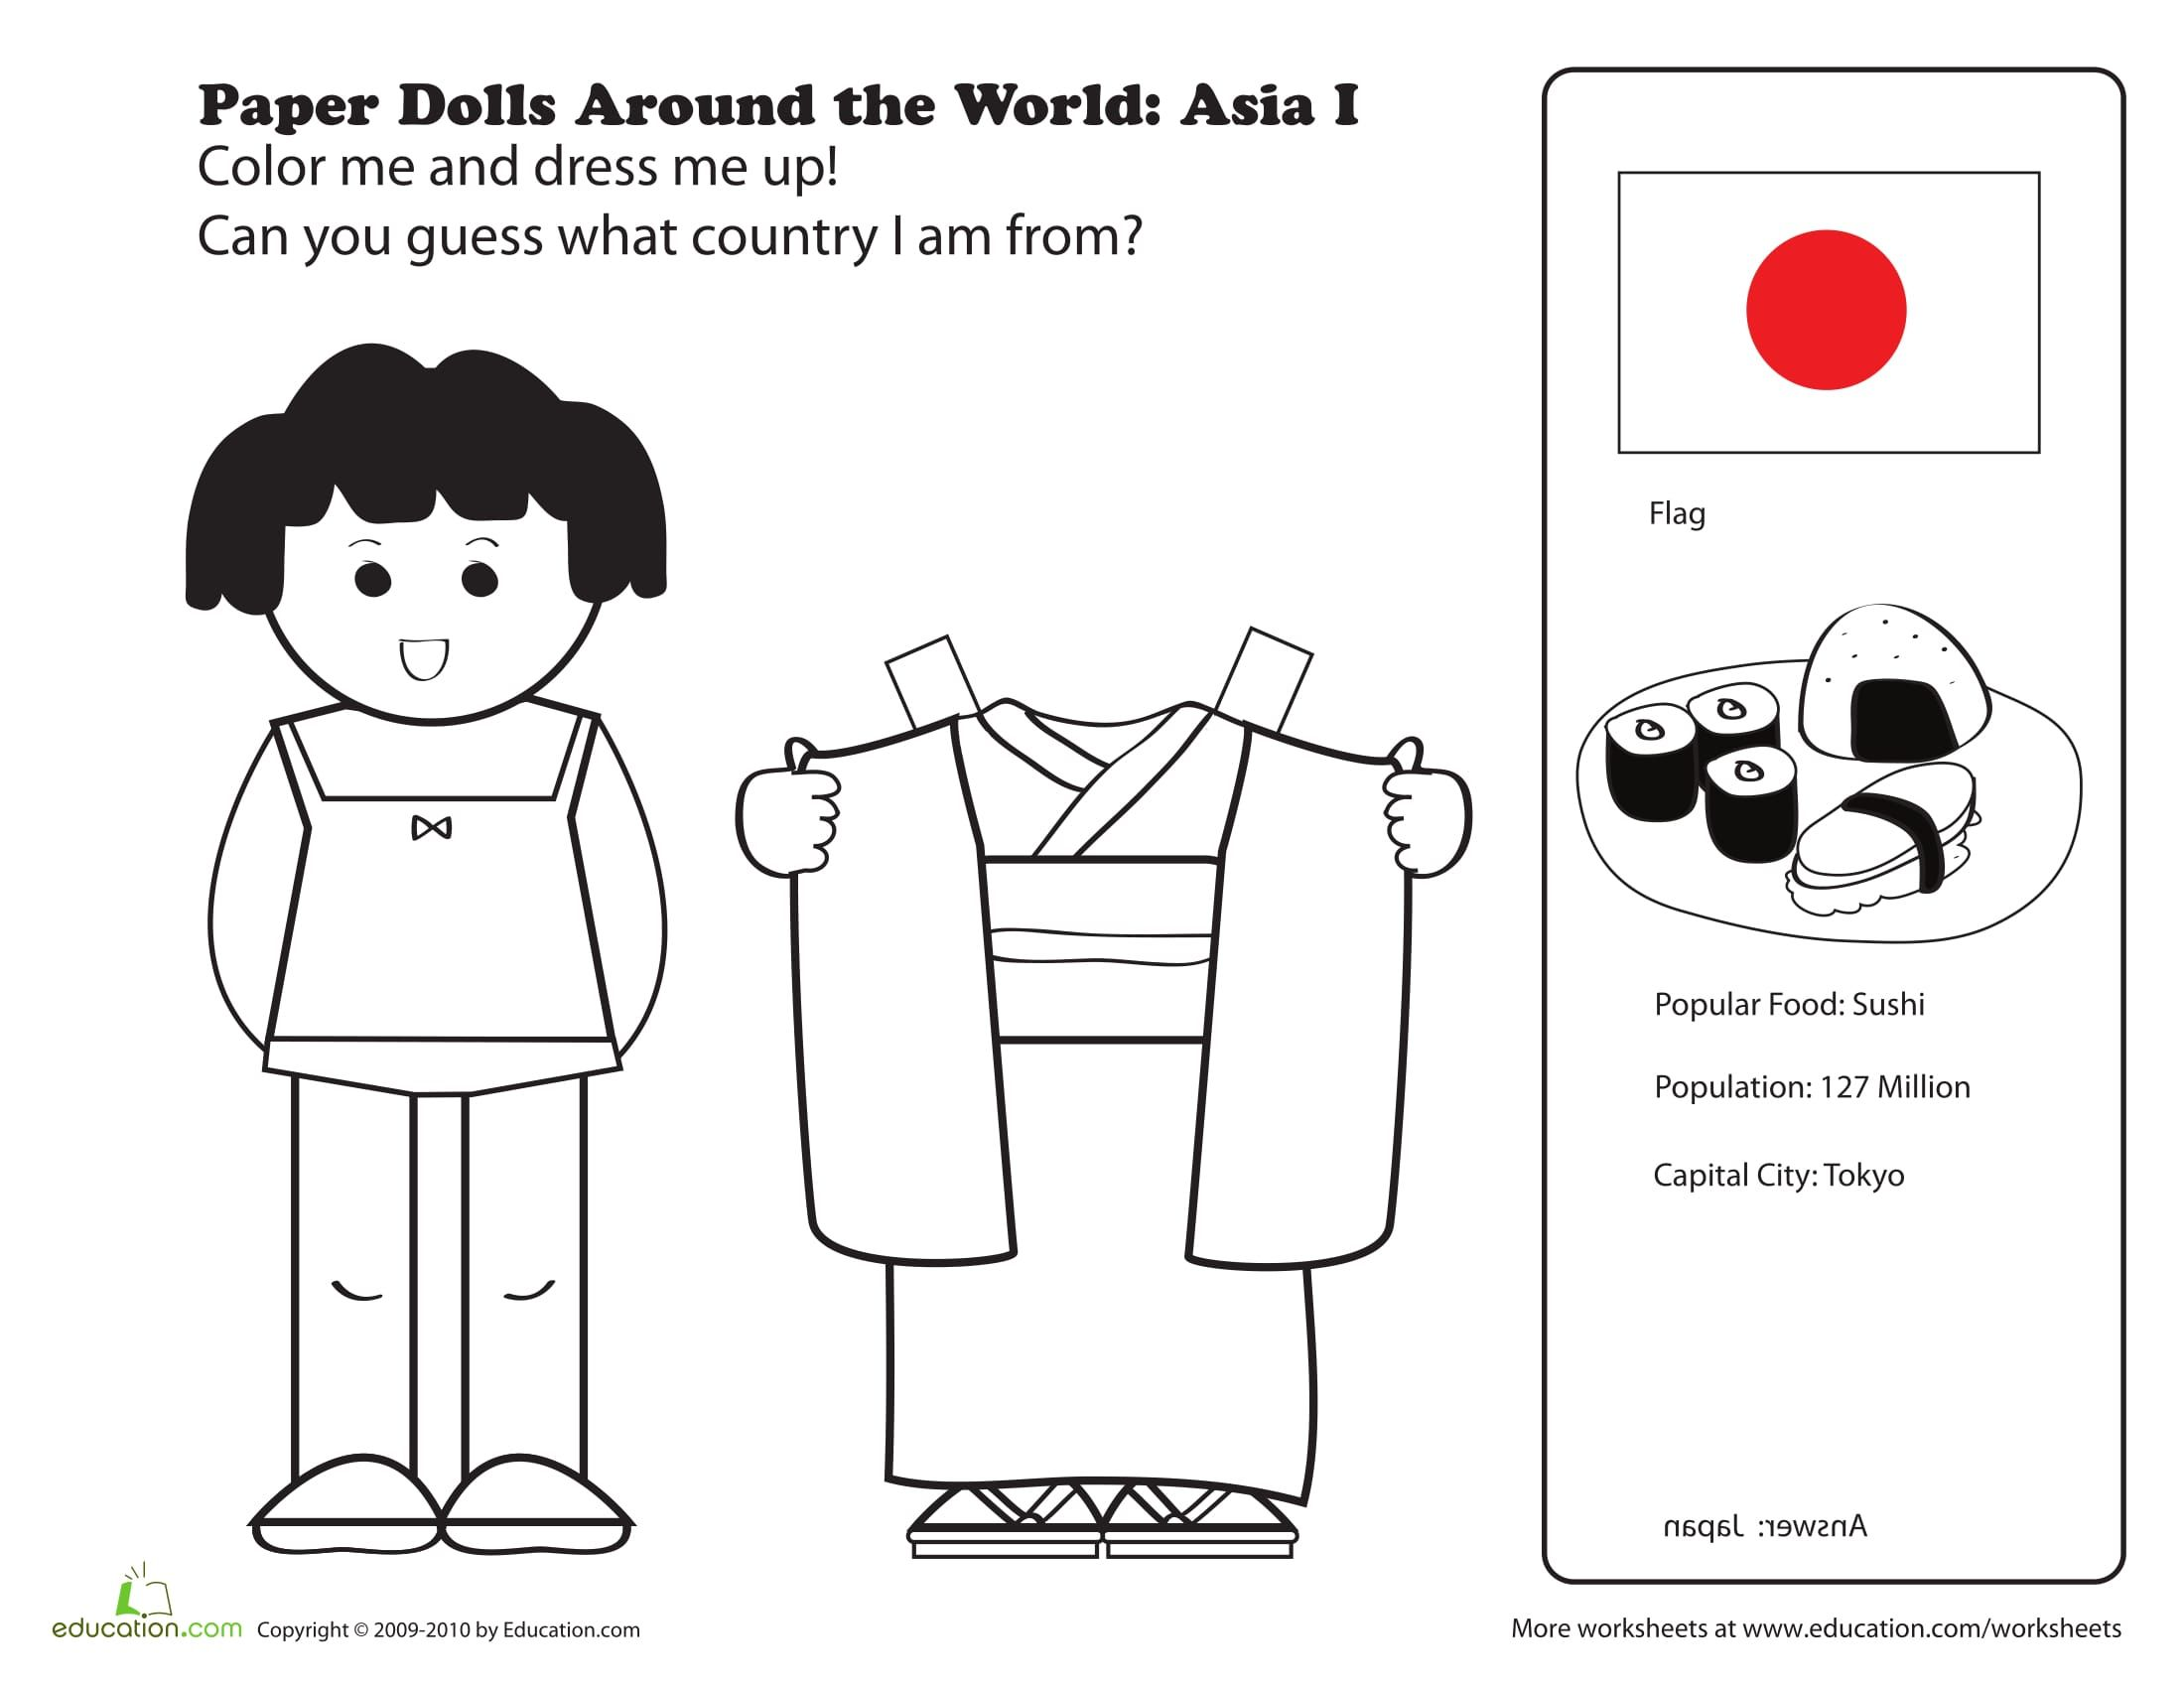 Fun Japanese Paper Doll For Geography Class On Japan